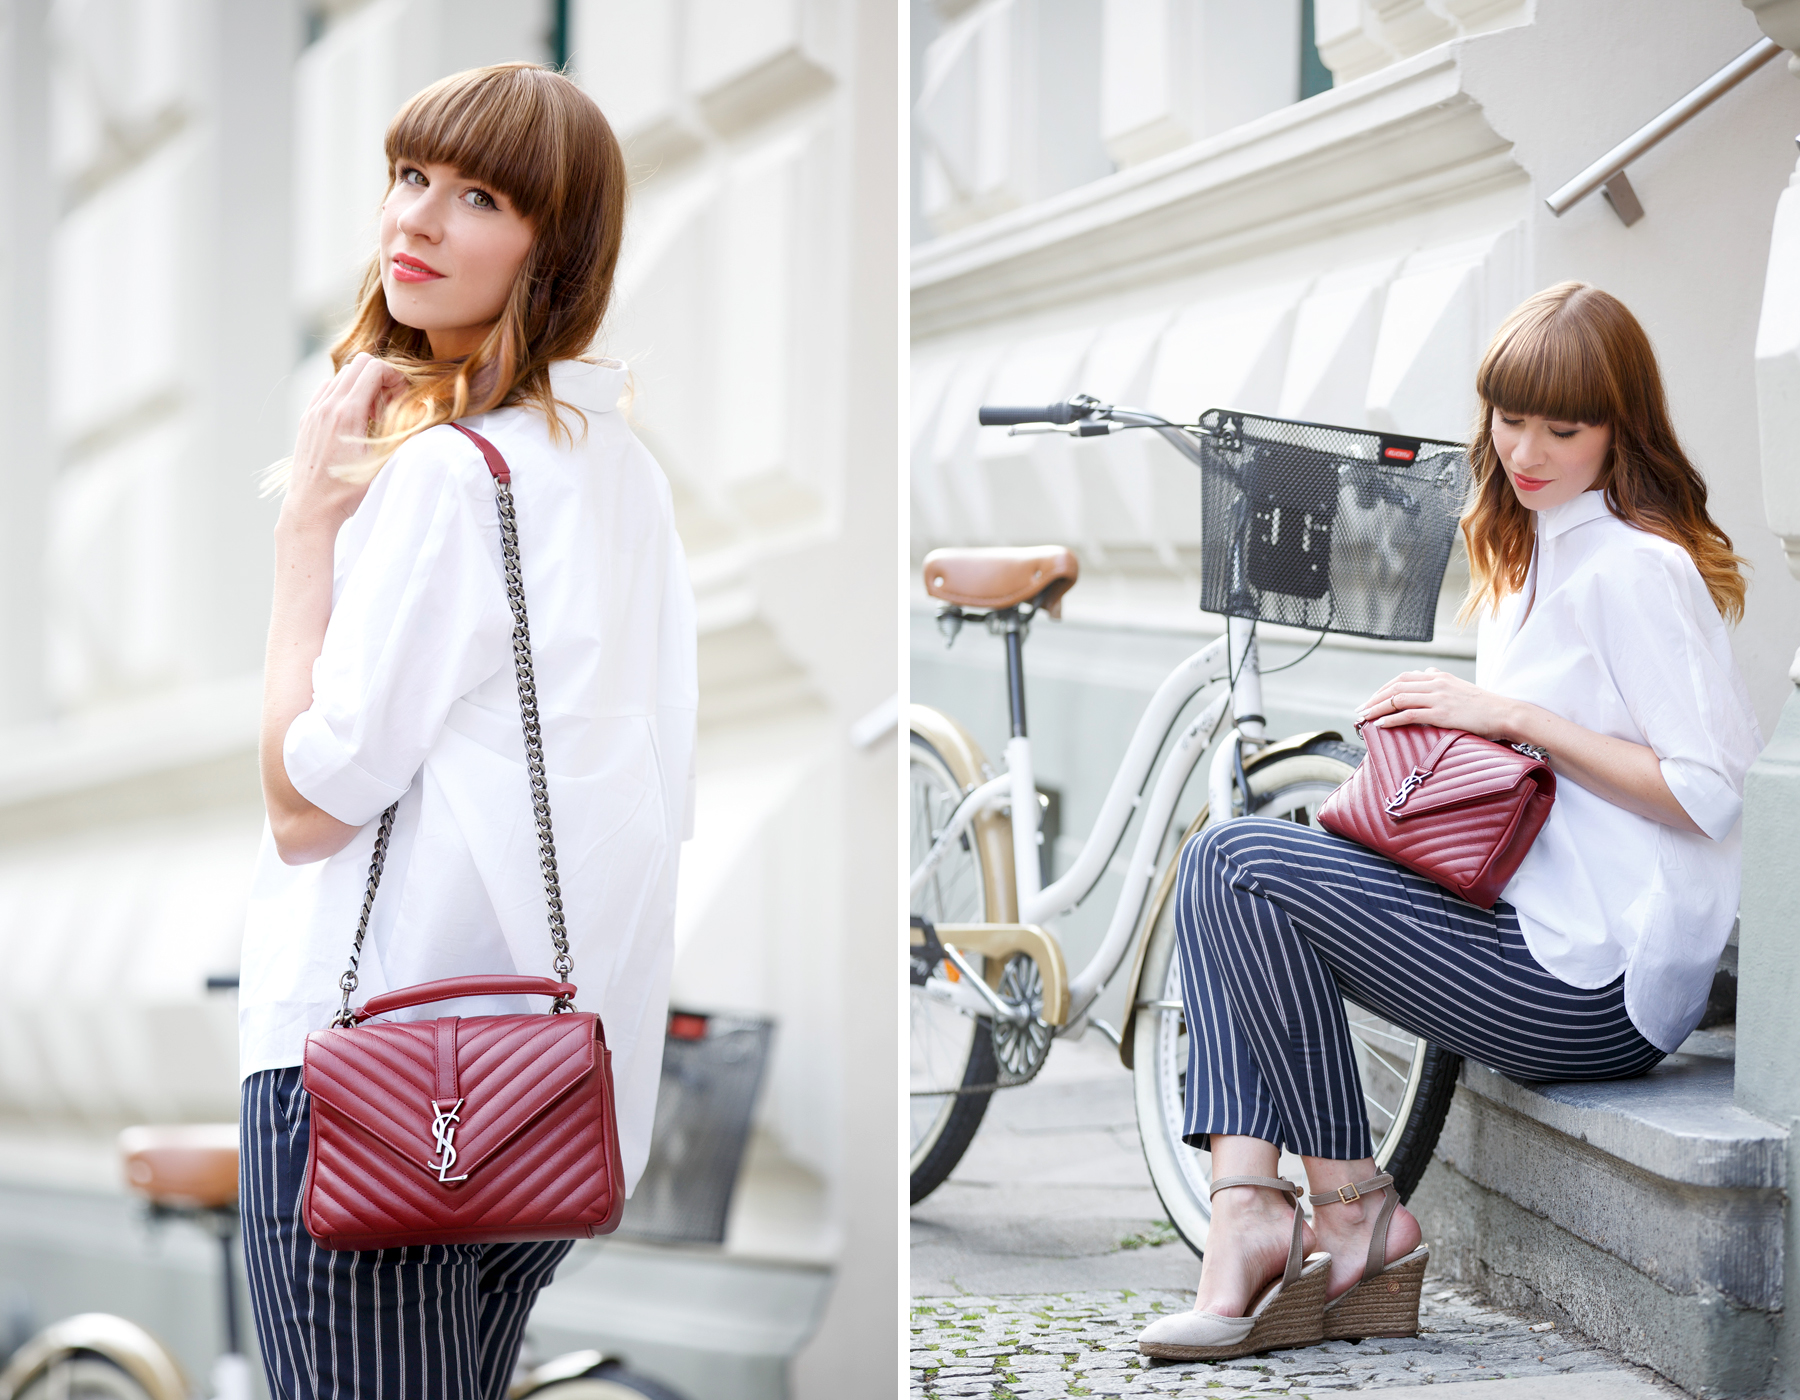 bike bicycle reserved georgia may jagger maritime ysl monogram bag red blue white outfit ootd look lookbook brunette bangs french parisienne parisian paris düsseldorf cute girly styling fashionblogger ricarda schernus cats & dogs blog 5